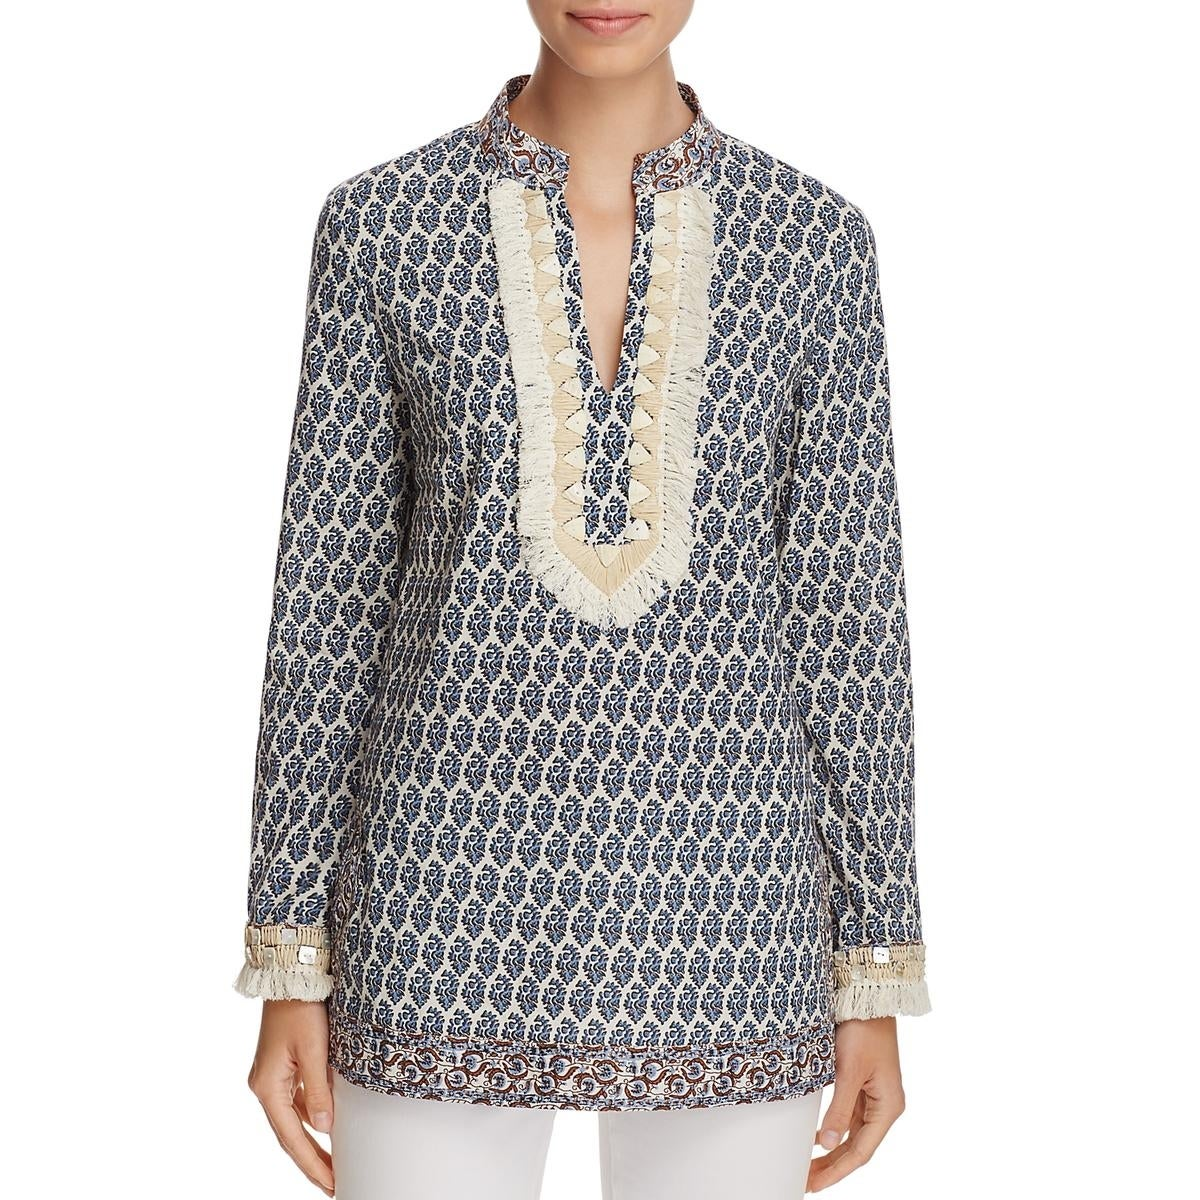 f30734ef15e5 Shop Tory Burch Womens Tunic Top Fringe Printed - On Sale - Free Shipping  Today - Overstock - 26419251